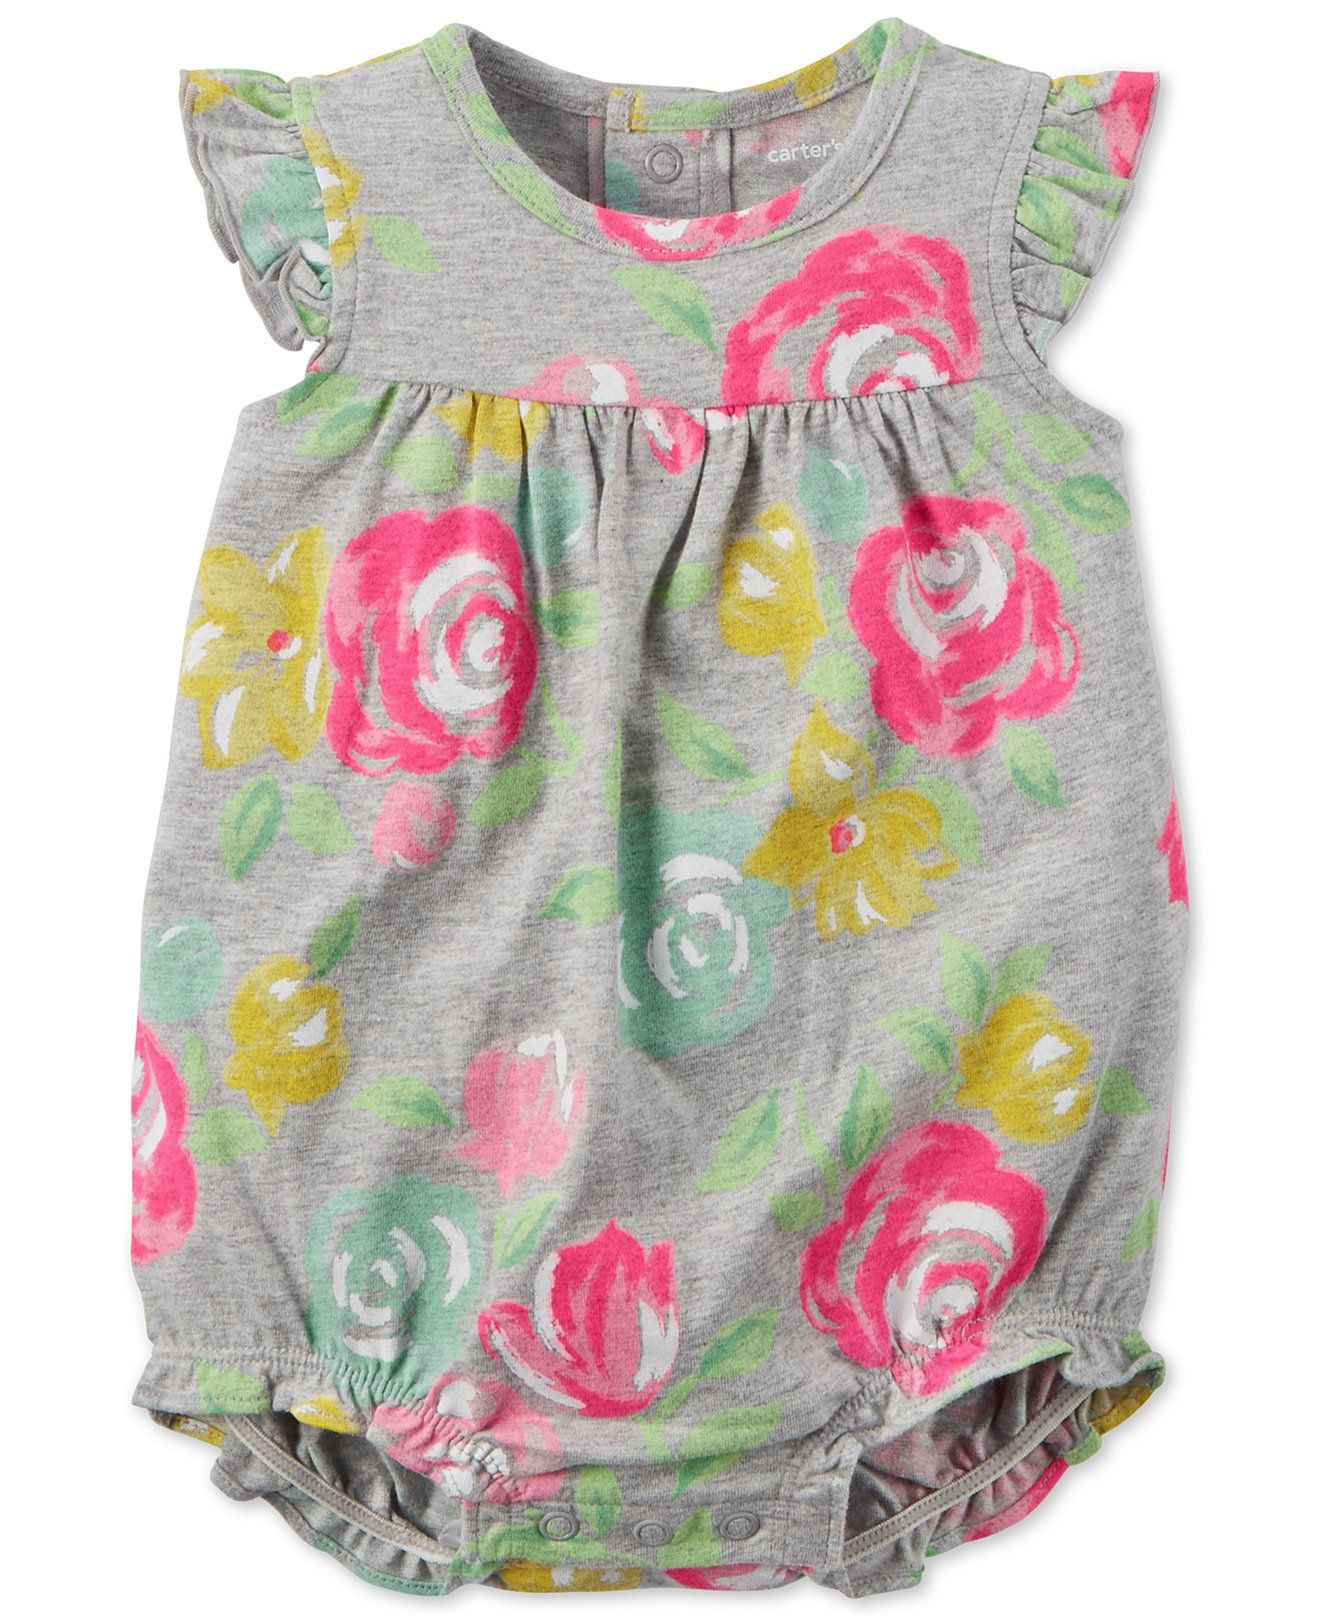 38fca33f2a0 Carter s Baby Girls  Floral-Print Romper - Baby Girl (0-24 months) - Kids    Baby - Macy s